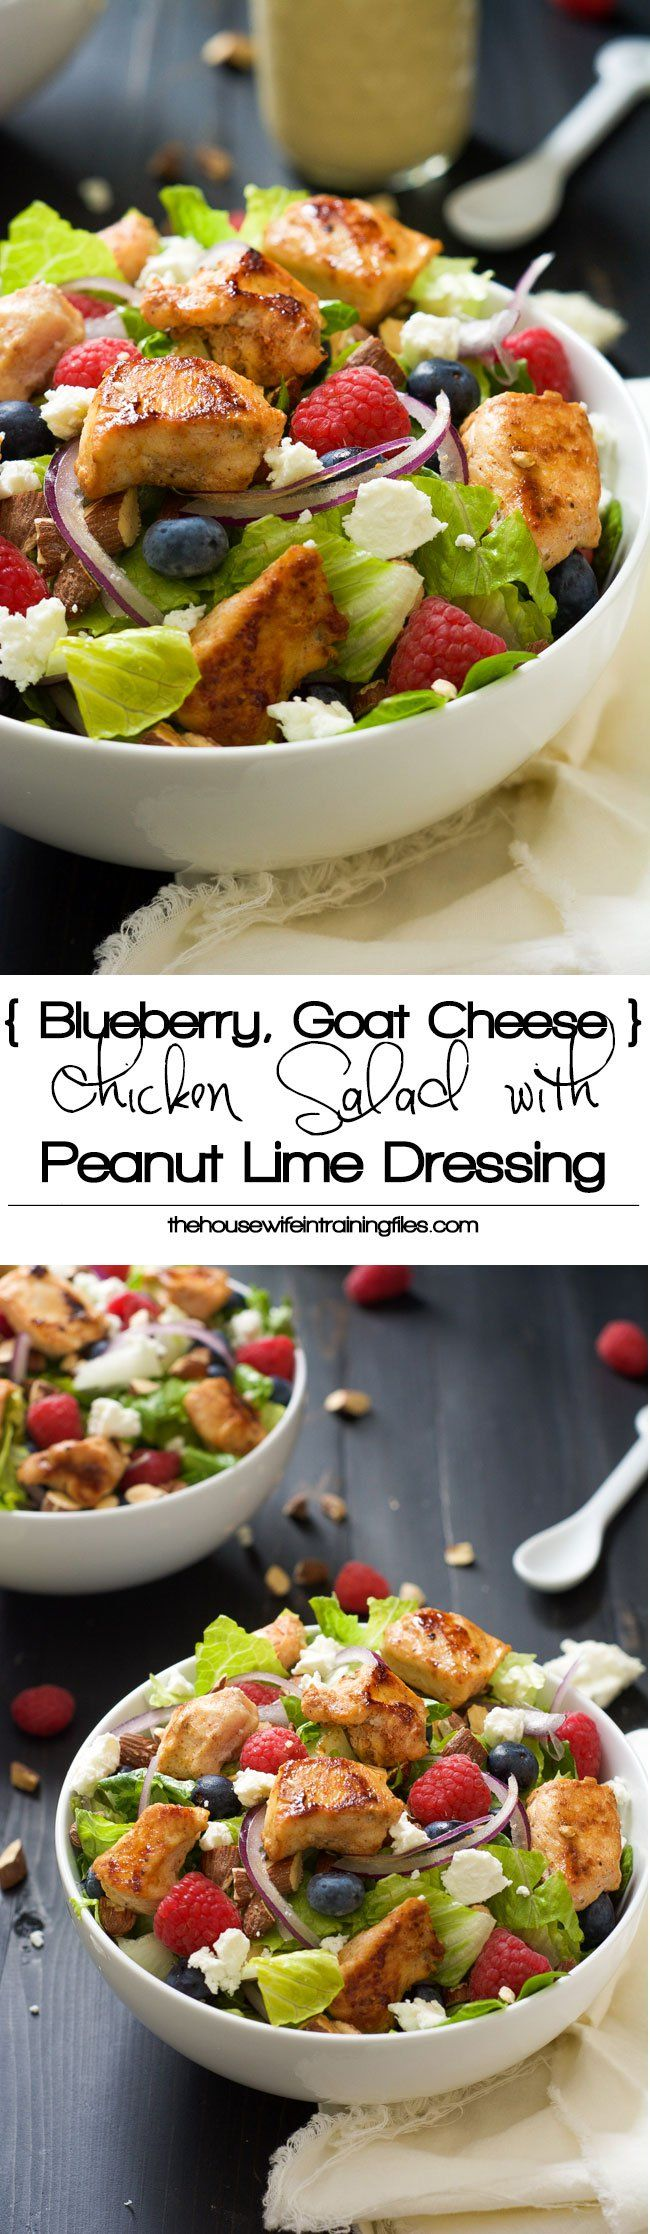 A hearty Chicken Salad with Peanut Dijon Dressing that is filled with fruit, creamy goat cheese, smoked almonds that is a nutritious dinner or lunch! #glutenfree #salad #fruit #peanutdjiondressing